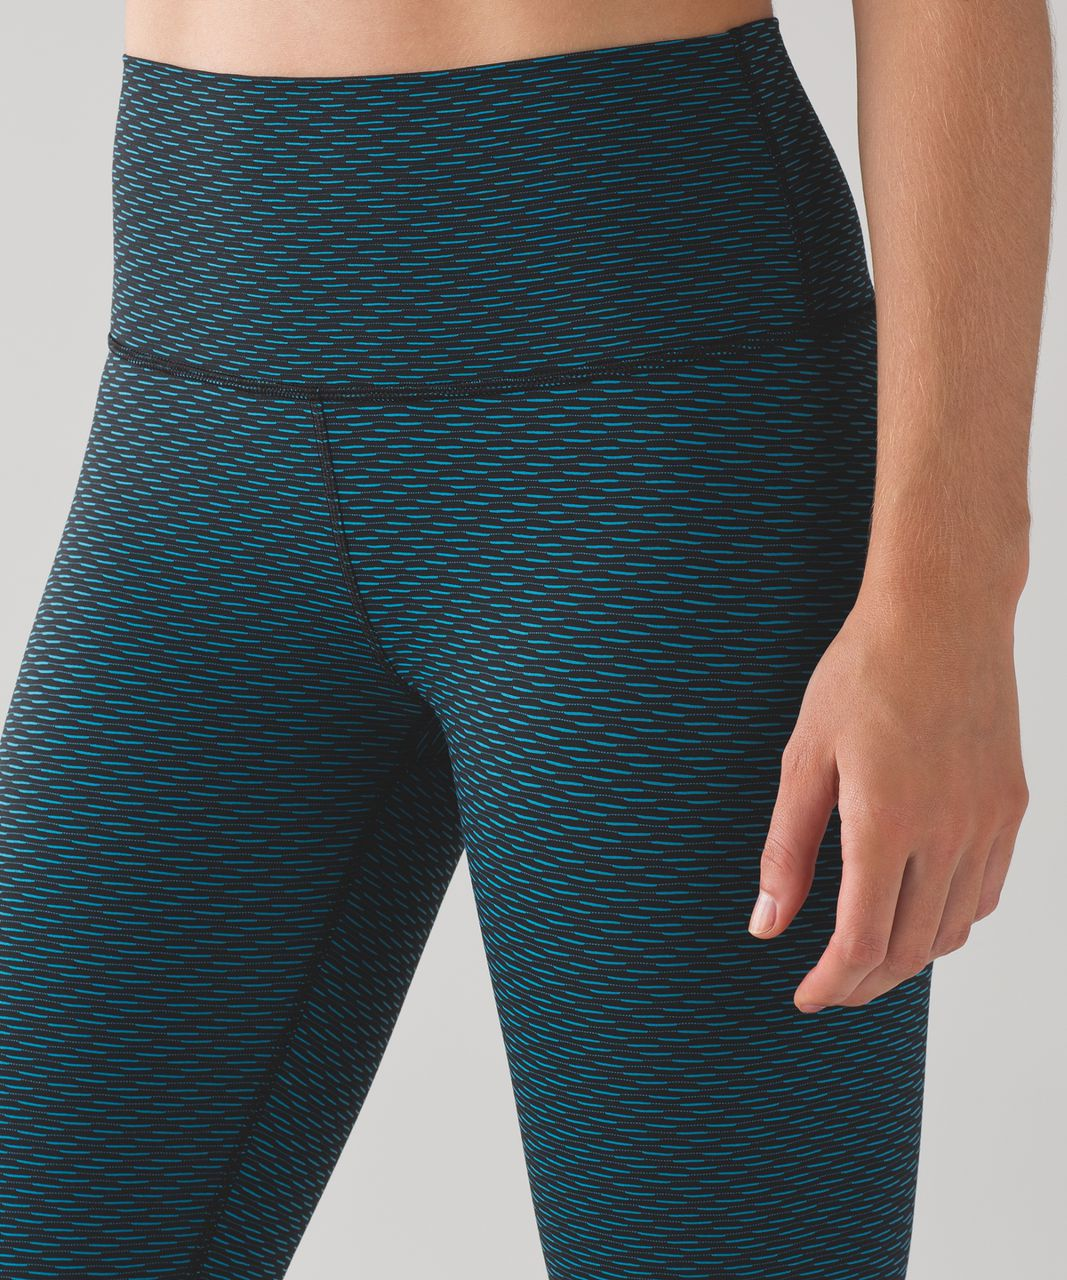 Lululemon High Times Pant (Luxtreme) - Score Jacquard Black Indian Ocean